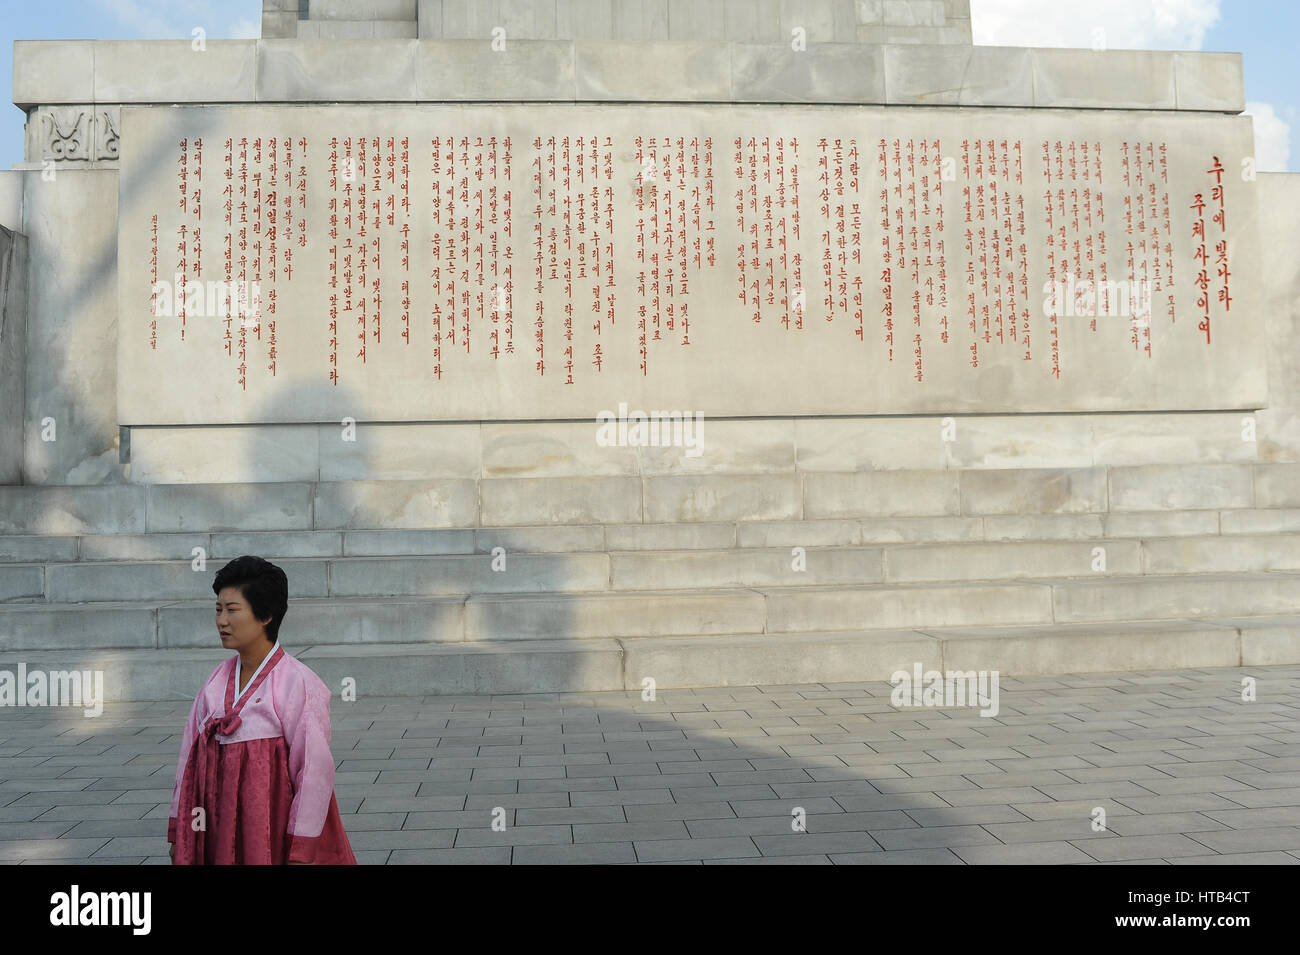 08.08.2012, Pyongyang, North Korea - A North Korean woman wearing a traditional dress is seen at the pedestal of - Stock Image